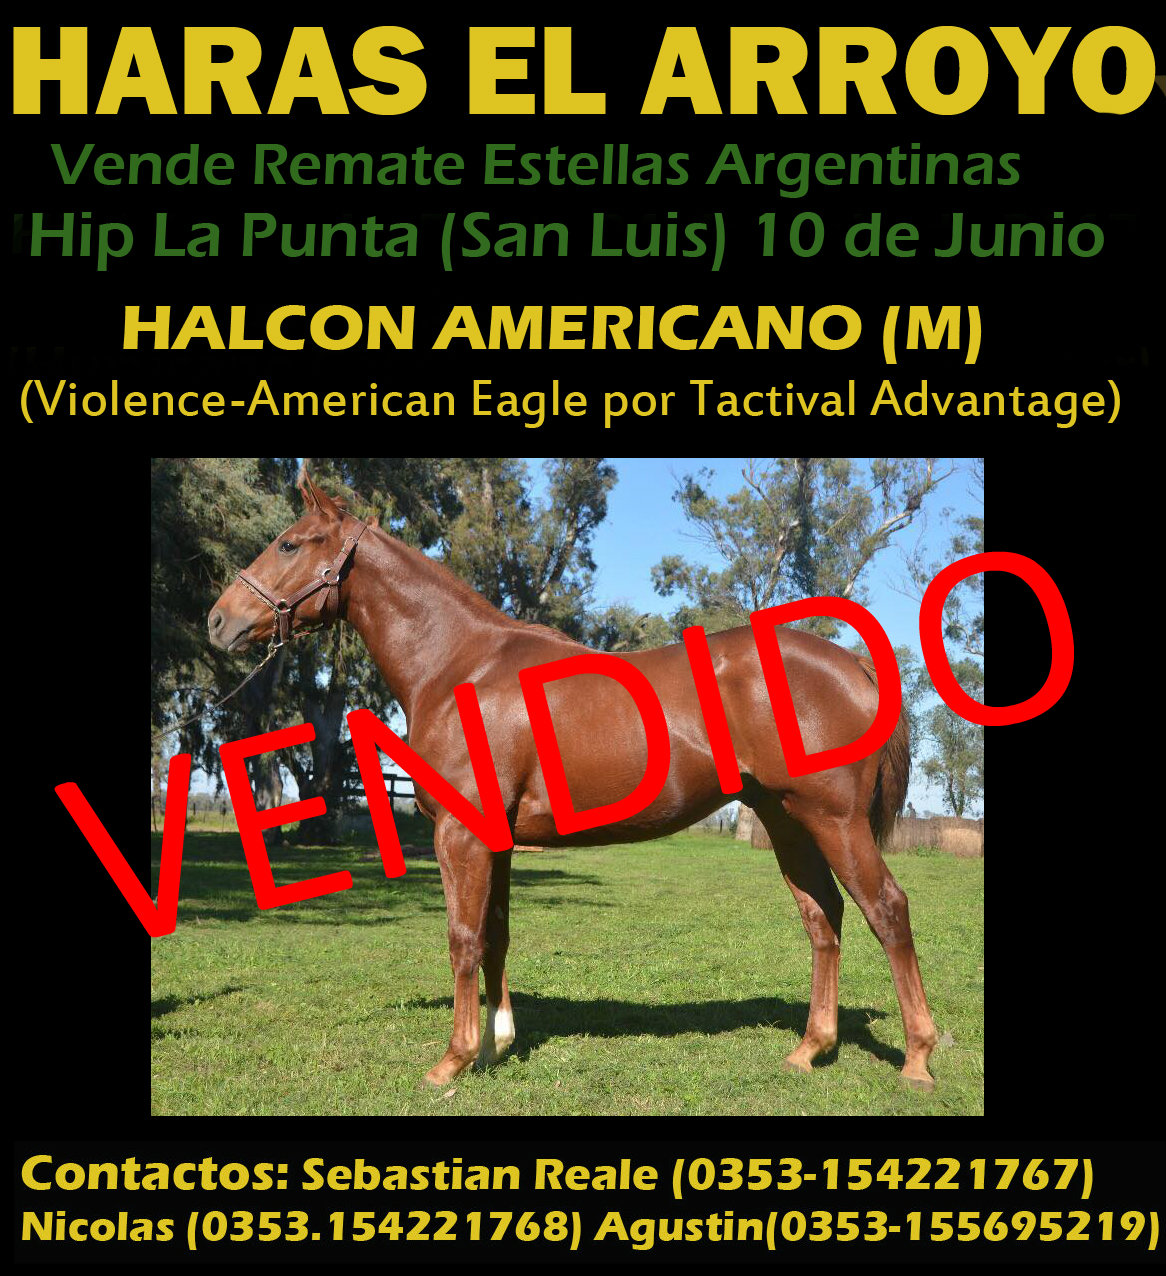 HS EL ARROYO LP 1